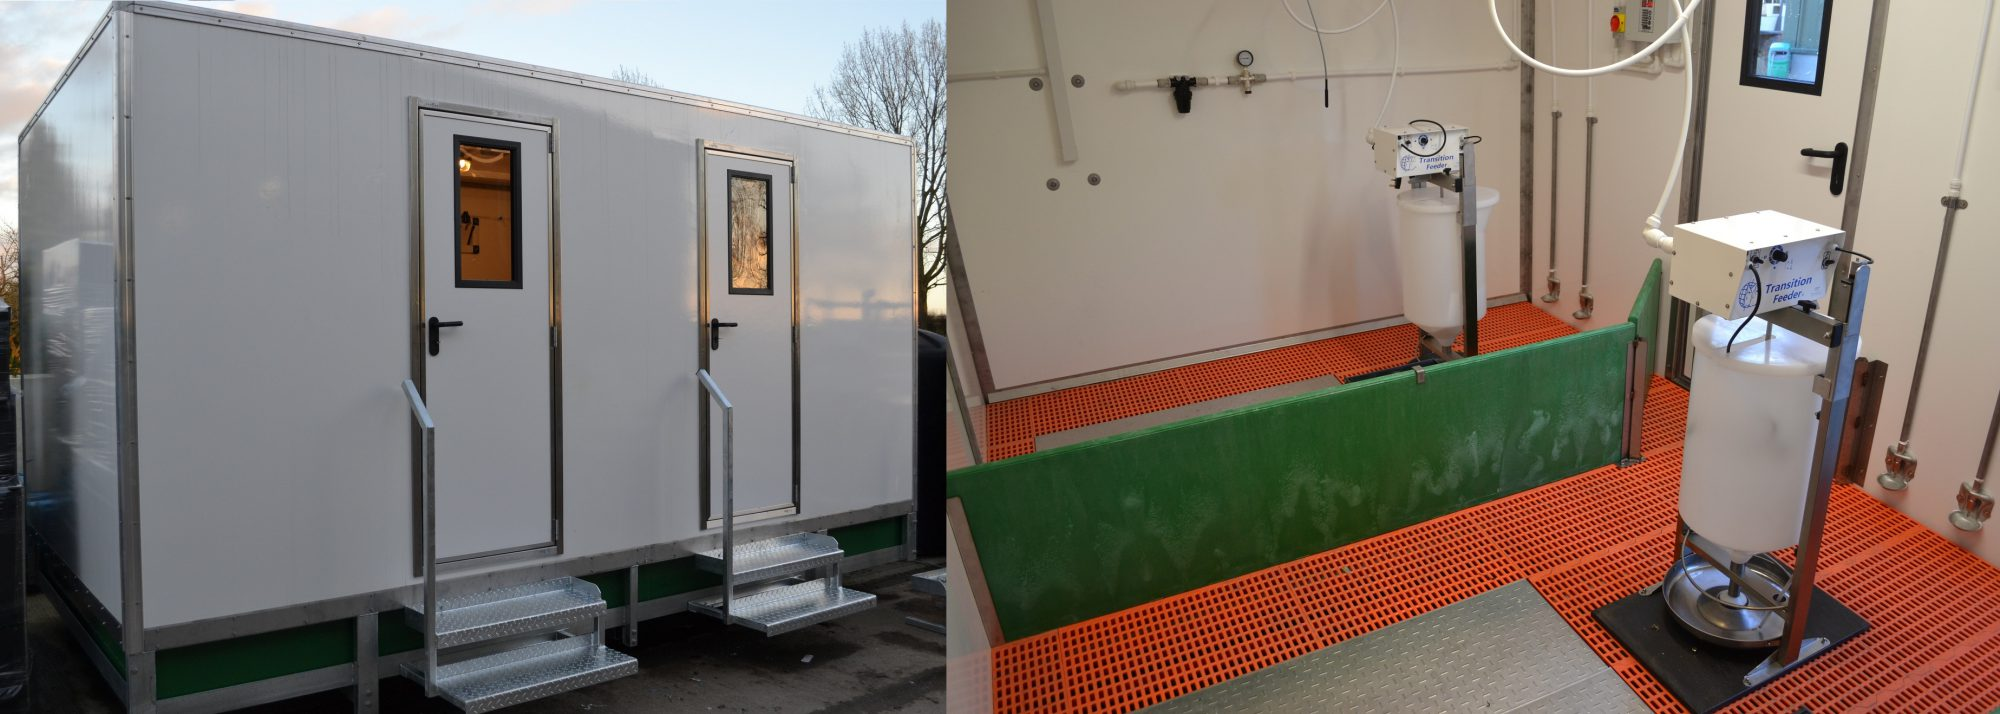 https://www.quality-equipment.co.uk/wp-content/uploads/Nursery-cabin-in-and-out-e1470904687108.jpg